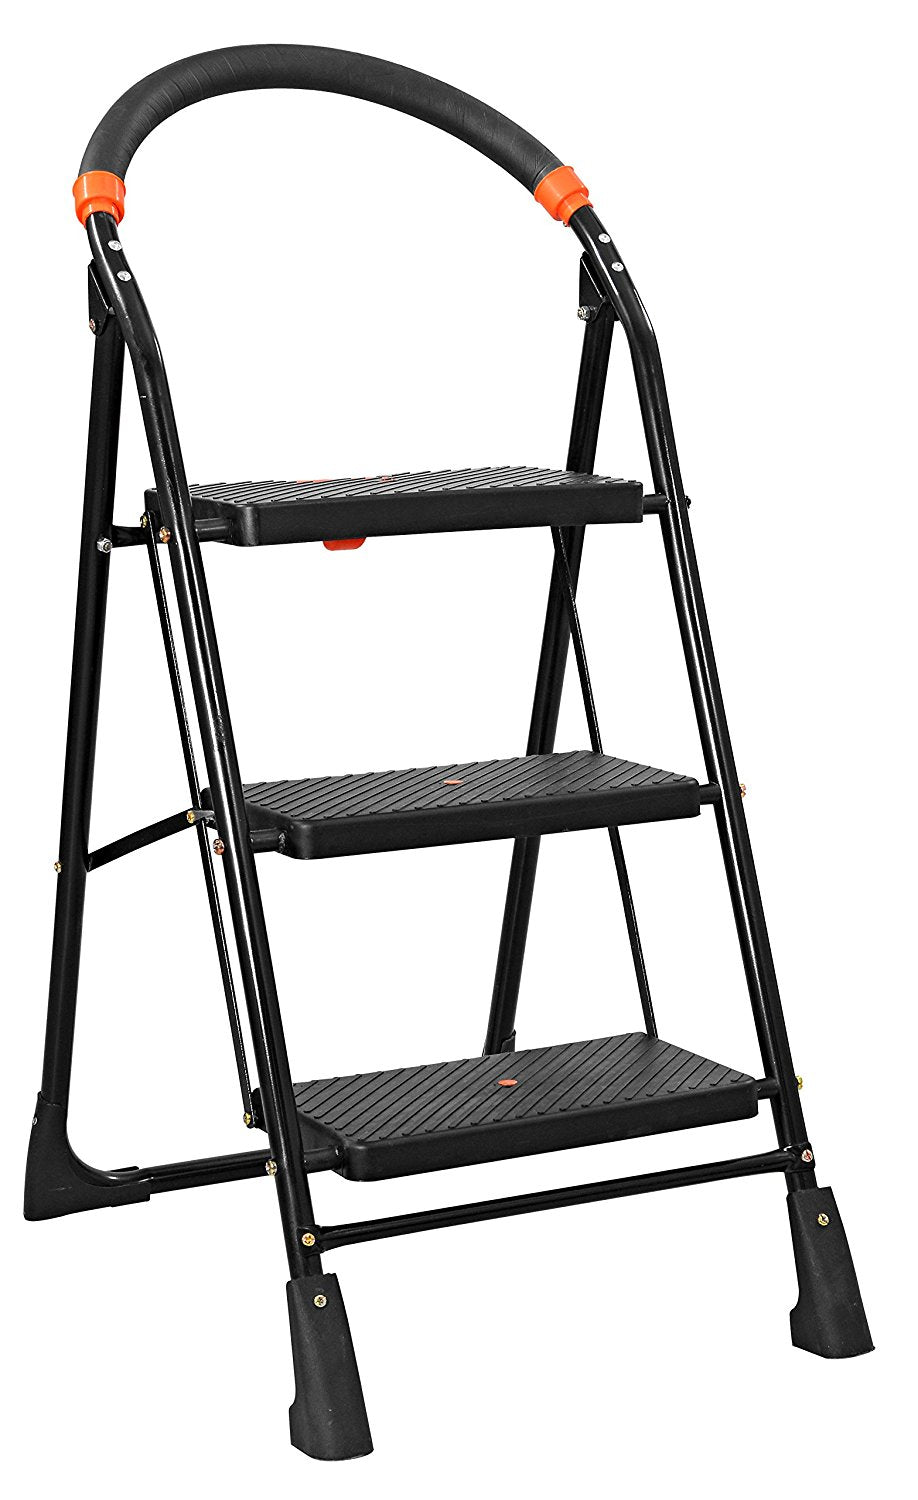 Parasnath Black Diamond Heavy Folding Ladder With Wide Steps 3 Steps 3.1 Ft Ladder - PARASNATH MADE IN INDIA